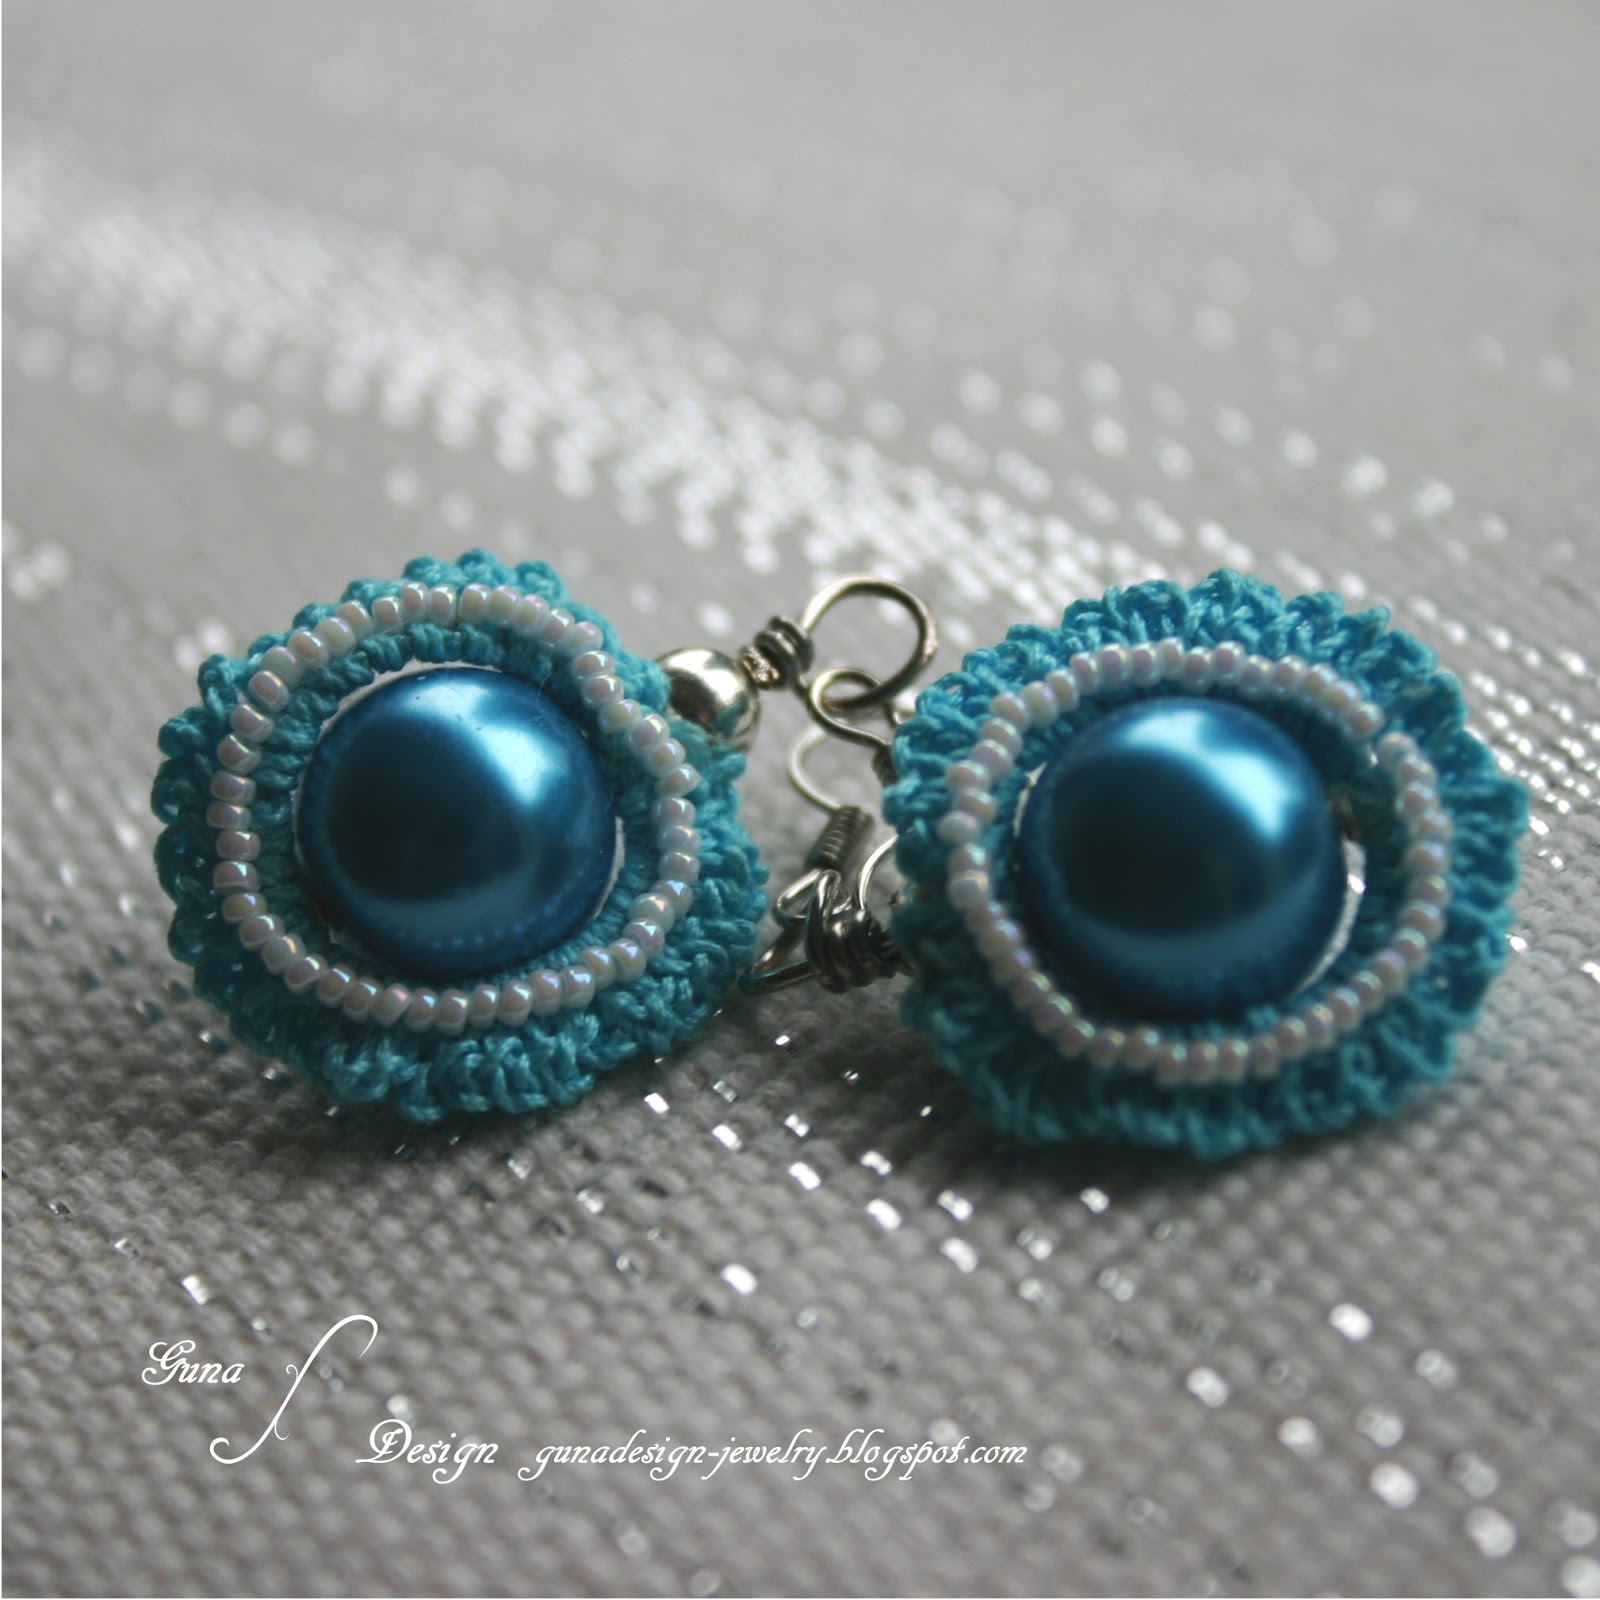 Crochet Earrings : Gunadesign DIY Irish Crochet Earrings tutorial Gunadesign Art of ...